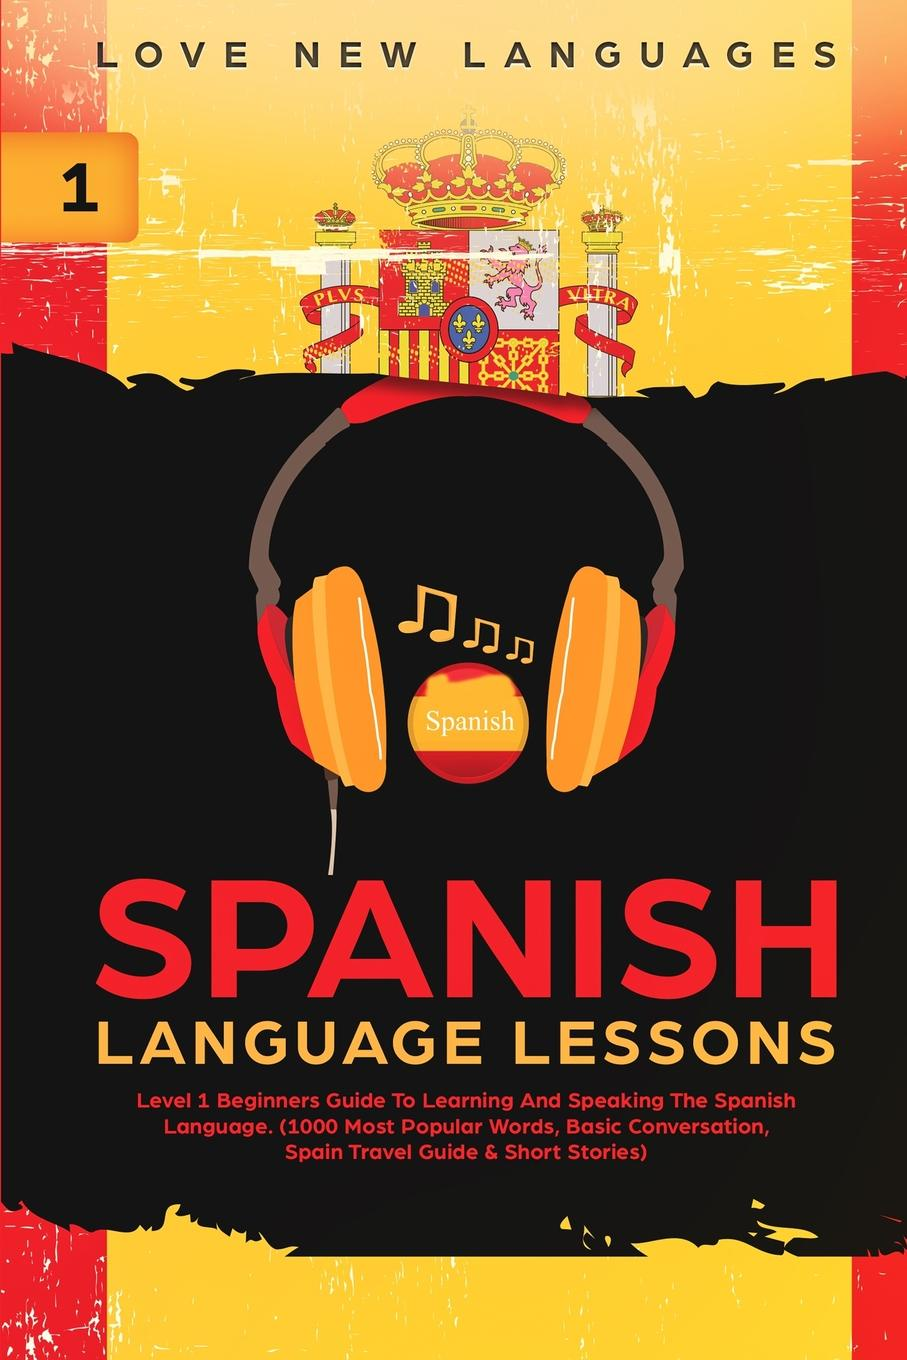 Love New Languages Spanish Language Lessons. Level 1 Beginners Guide To Learning And Speaking The Spanish Language (1000 Most Popular Words, Basic Conversation, Spain Travel Guide & Short Stories)